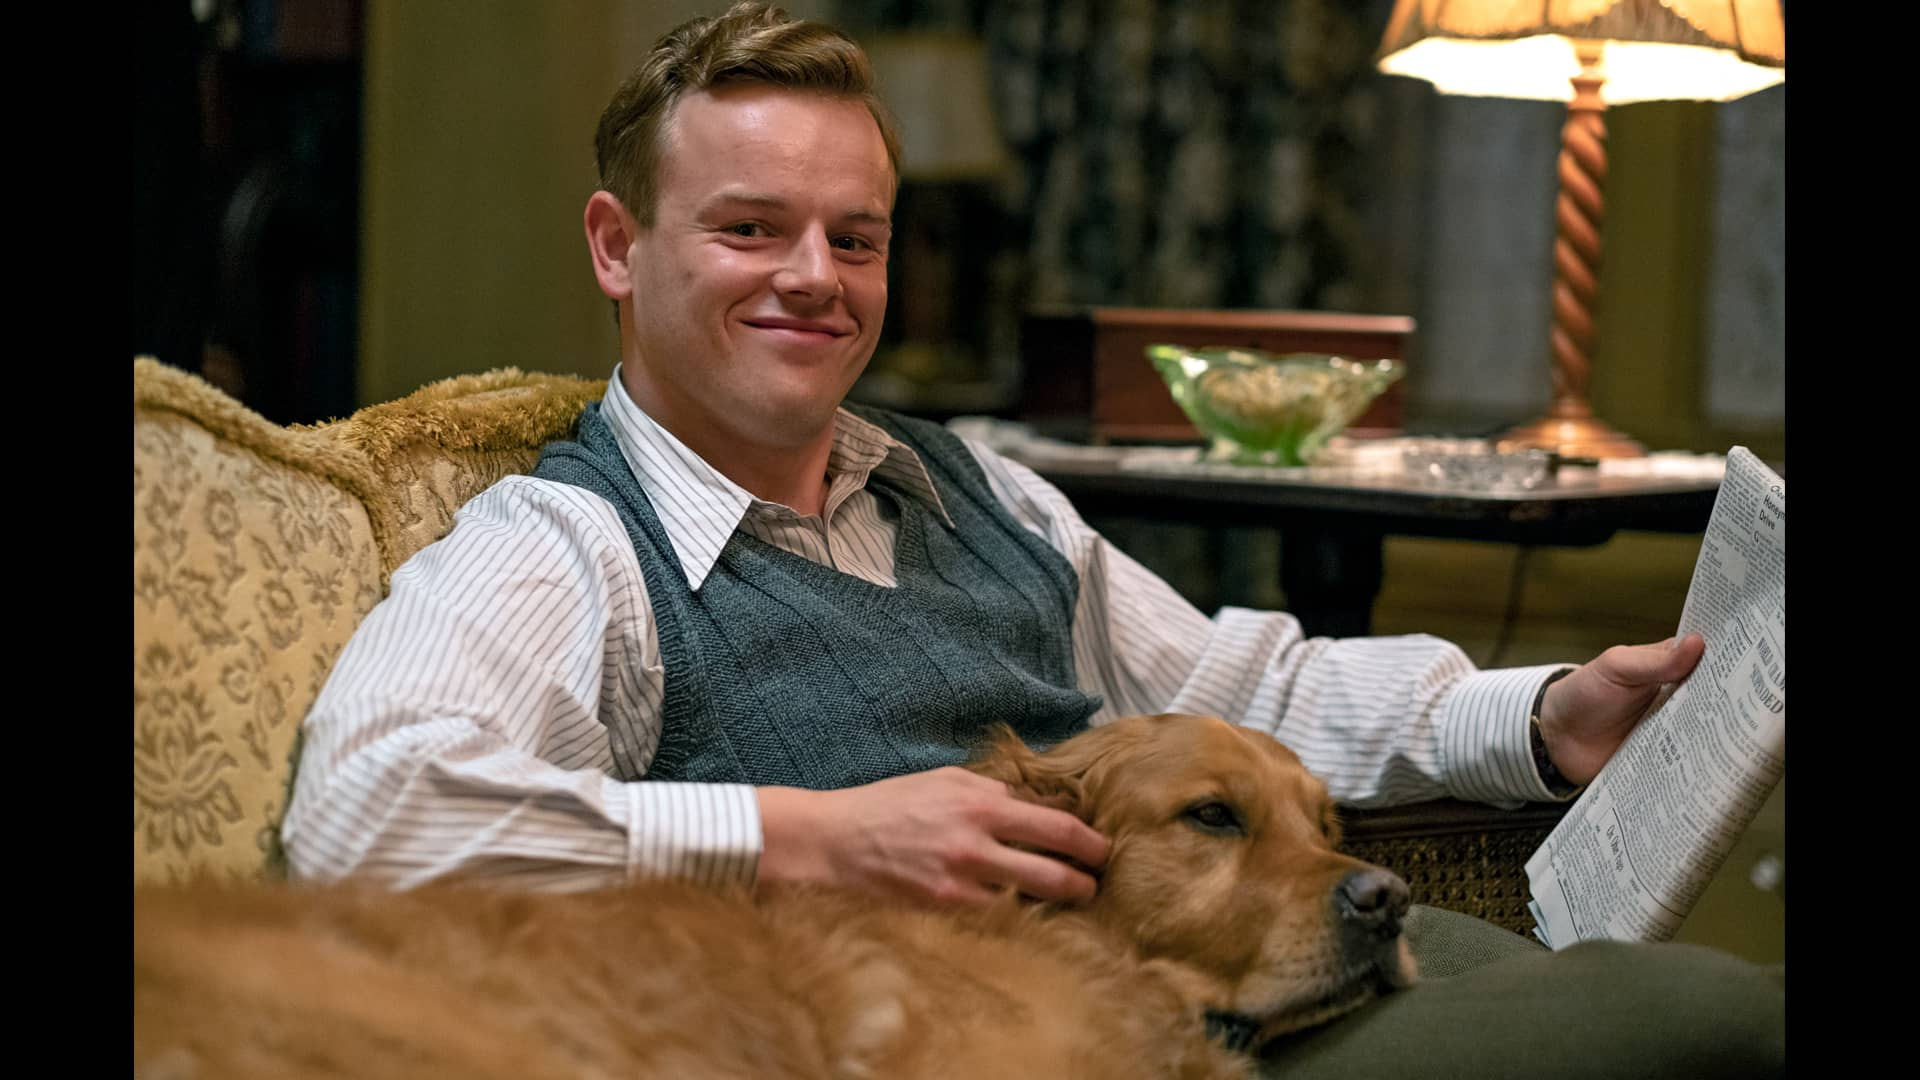 Callum Woodhouse in All Creatures Great and Small as seen on MASTERPIECE on PBS